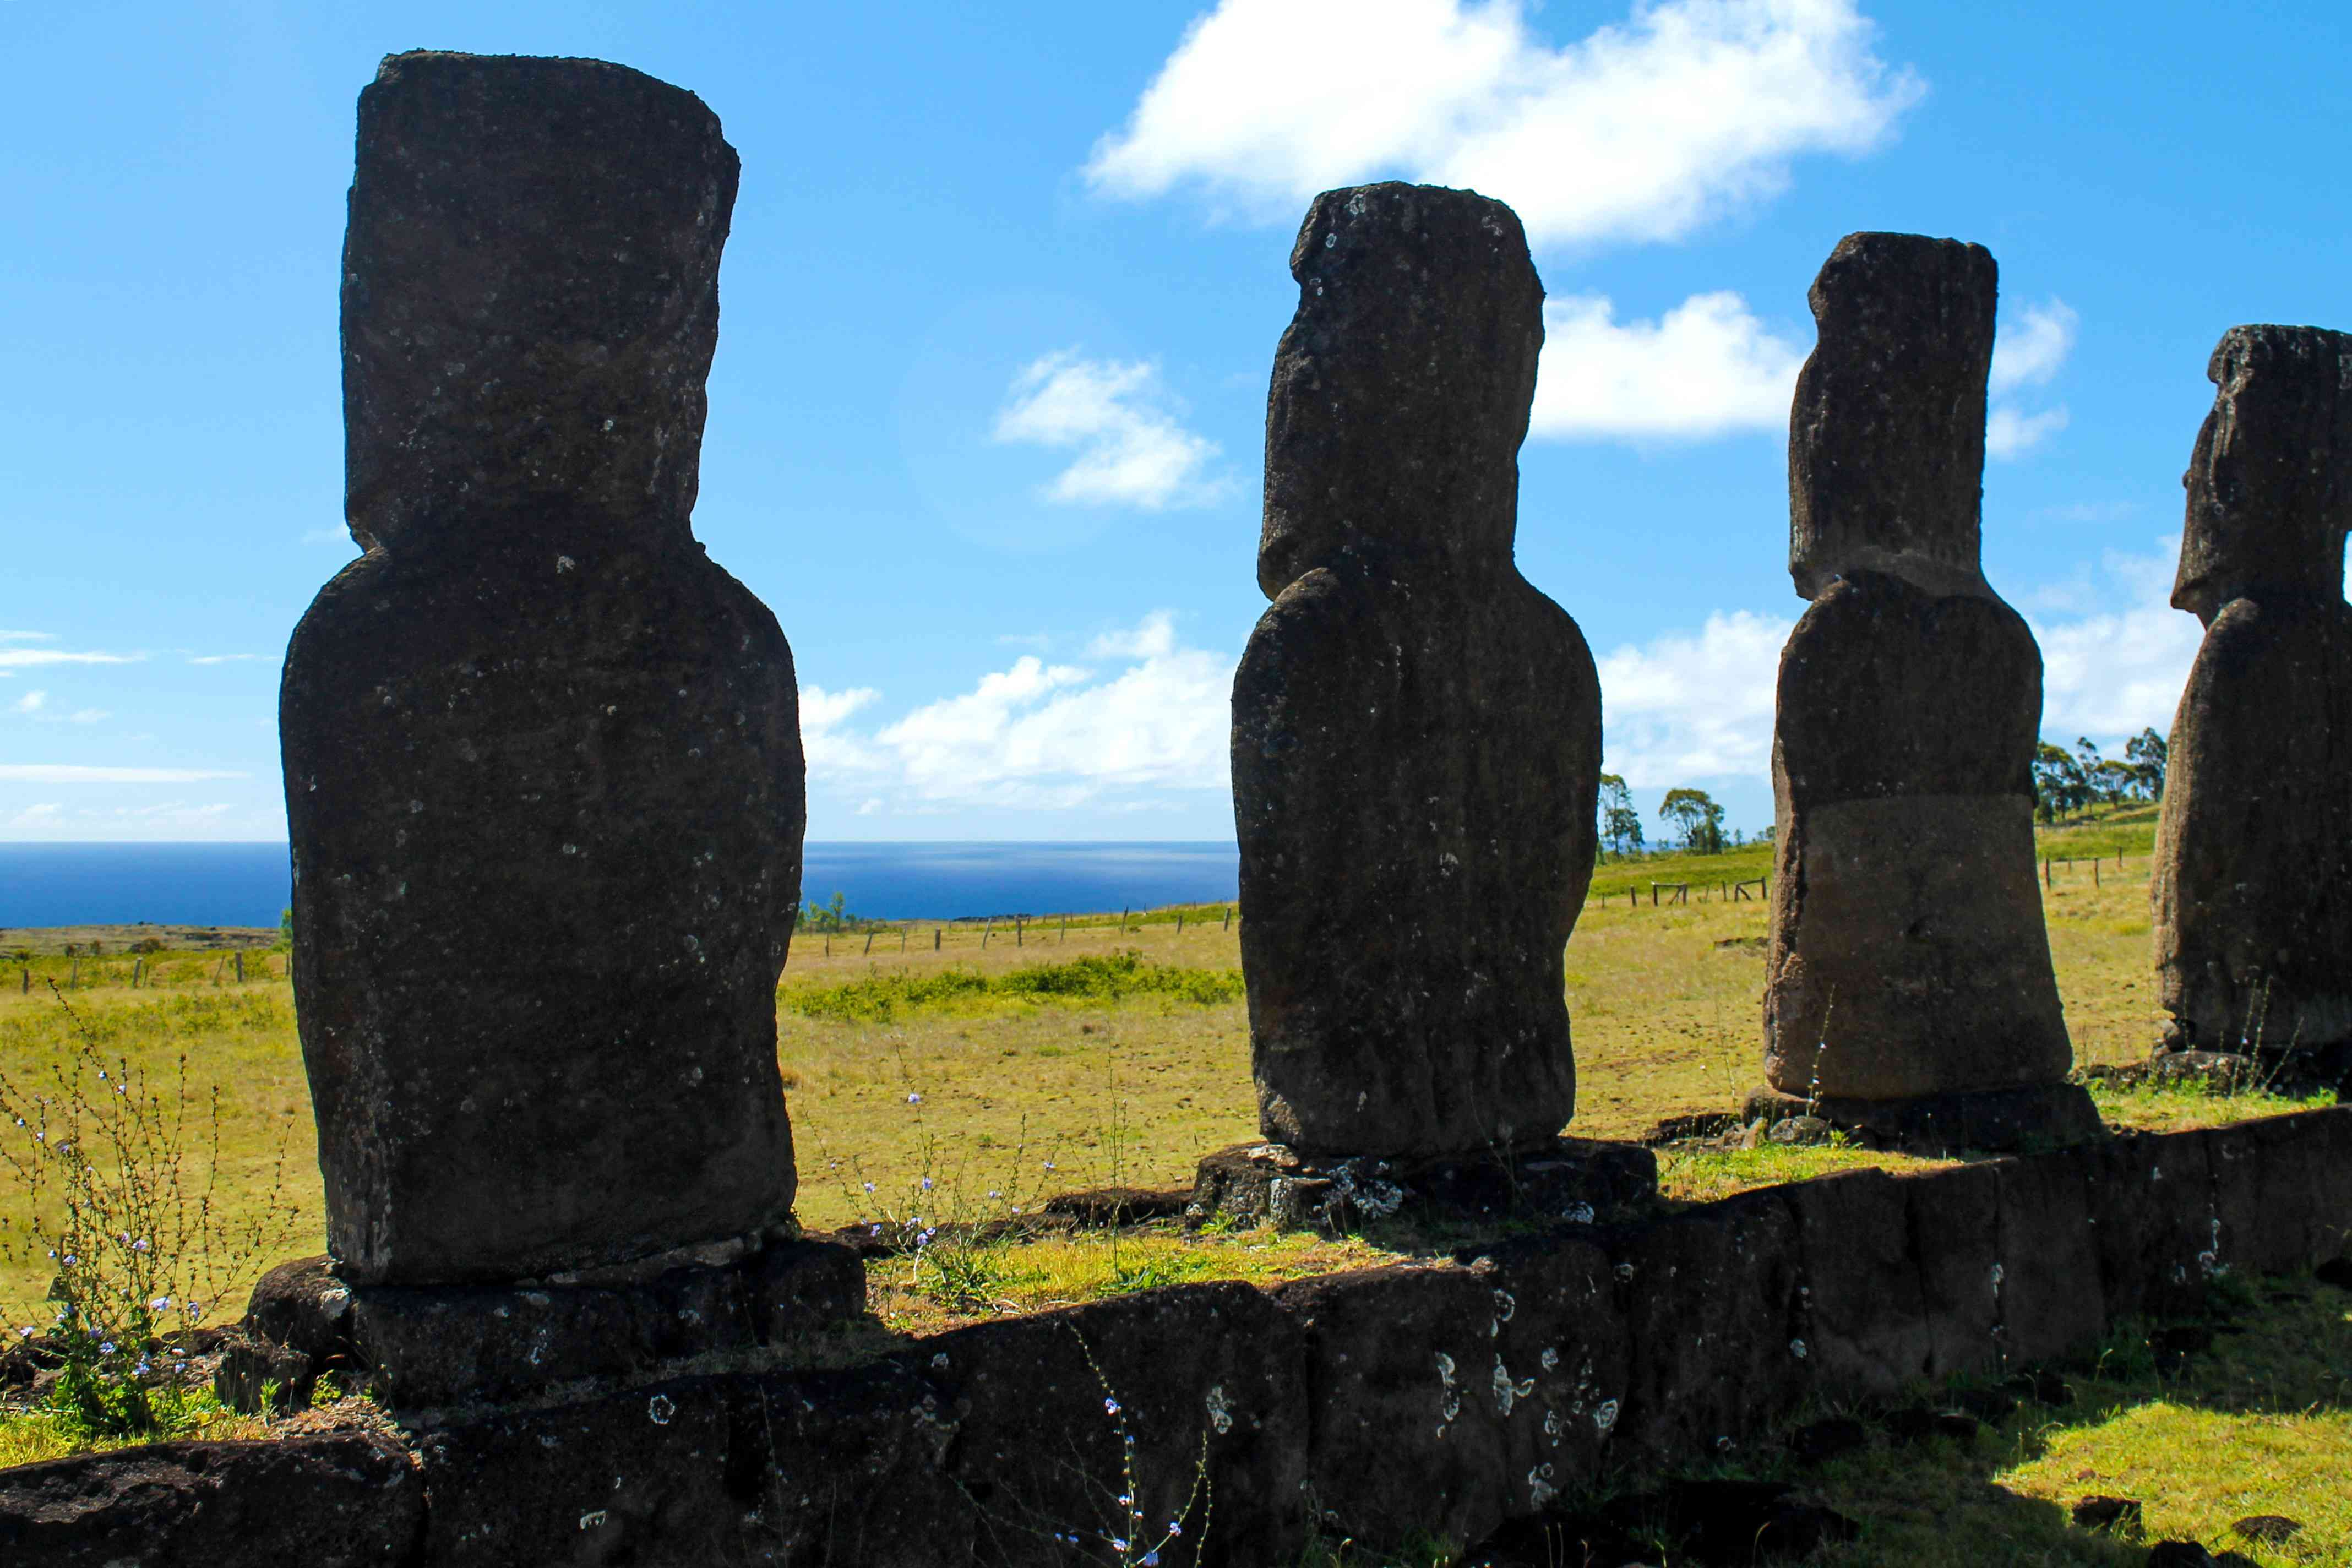 The smooth, weather-worn backs of the moai at Ahu Akivi